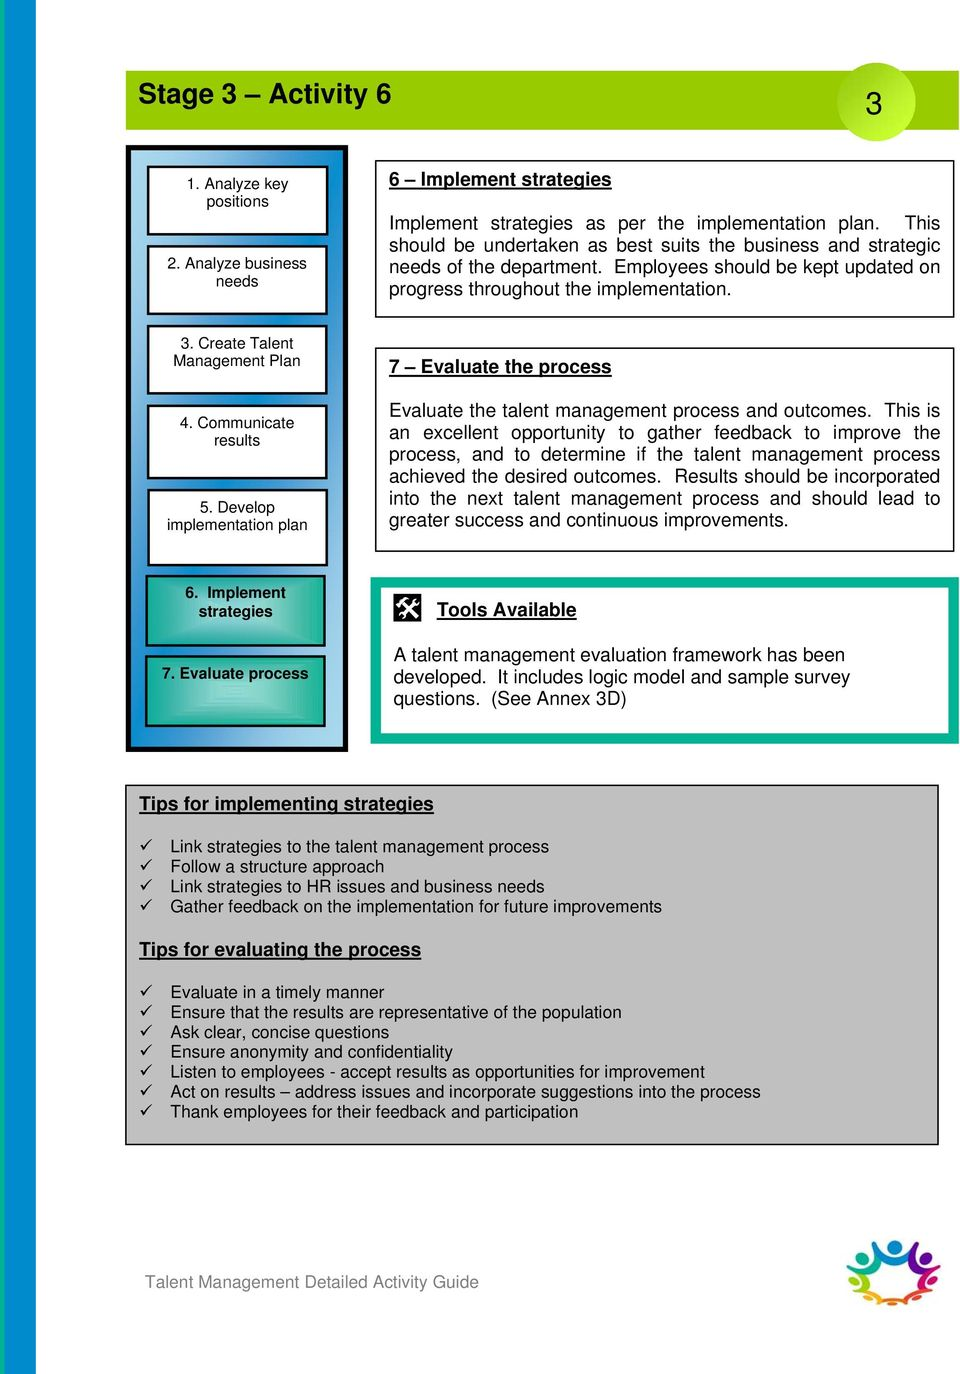 Communicate results 5. Develop implementation plan 7 Evaluate the process Evaluate the talent management process and outcomes.